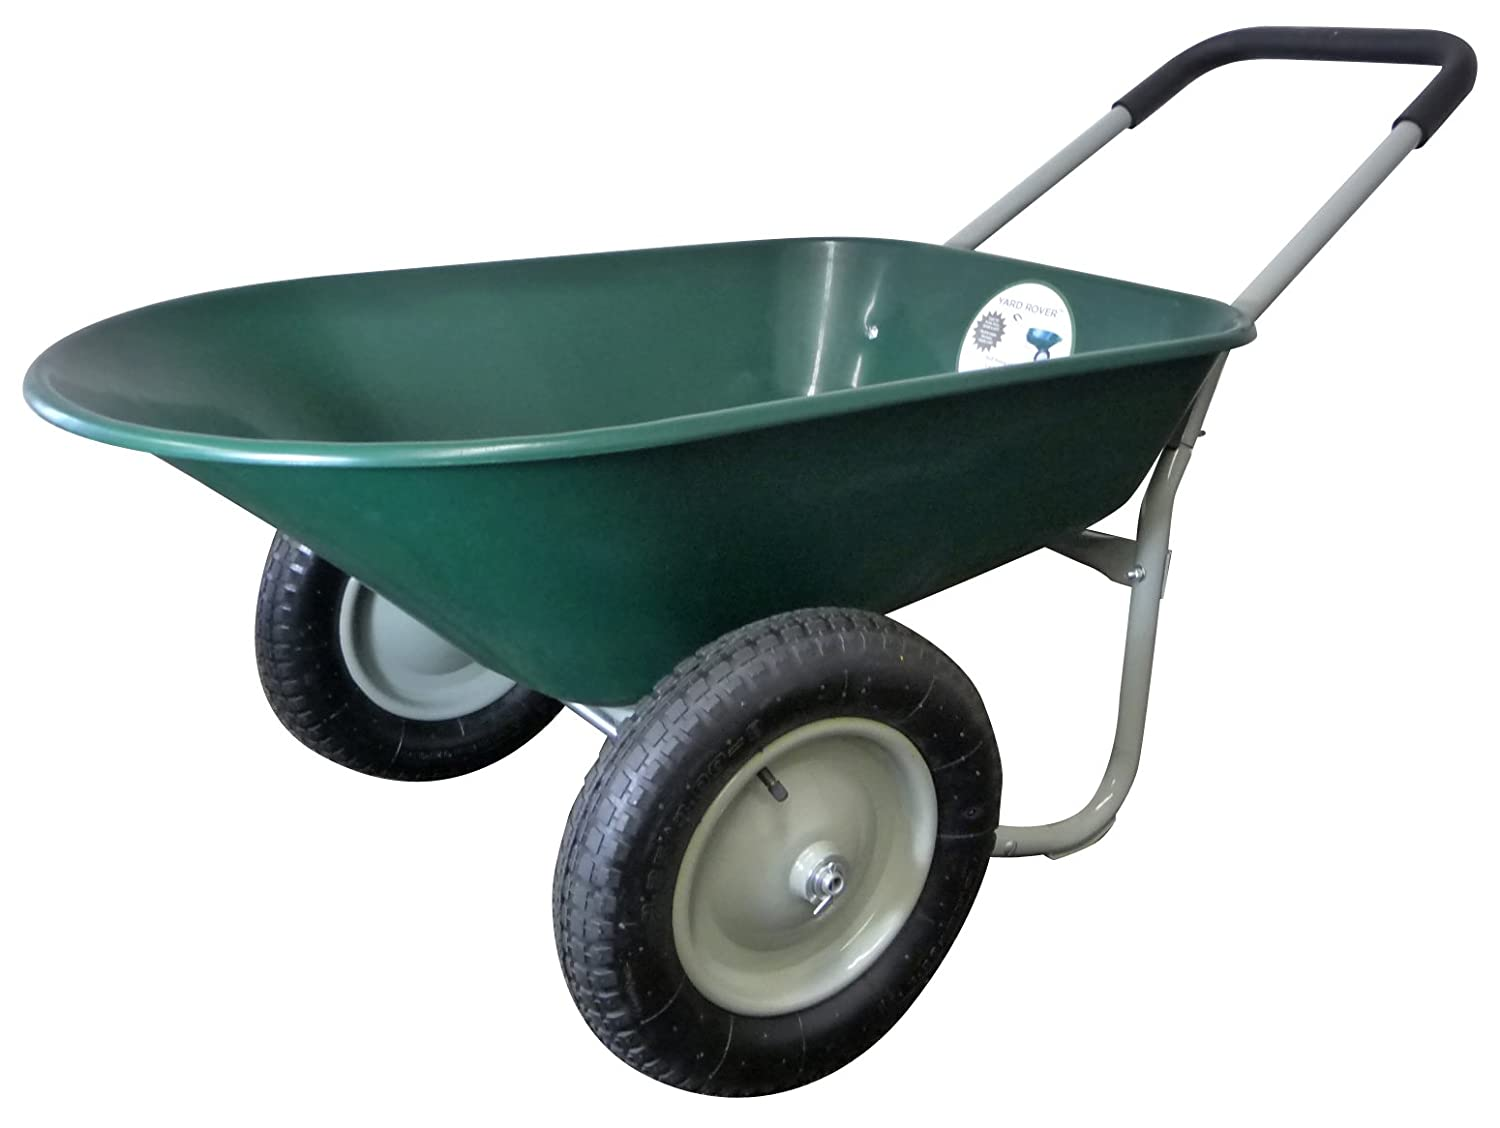 Marathon Dual-Wheel Residential Yard Rover Wheelbarrow and Yard Cart - best wheelbarrow